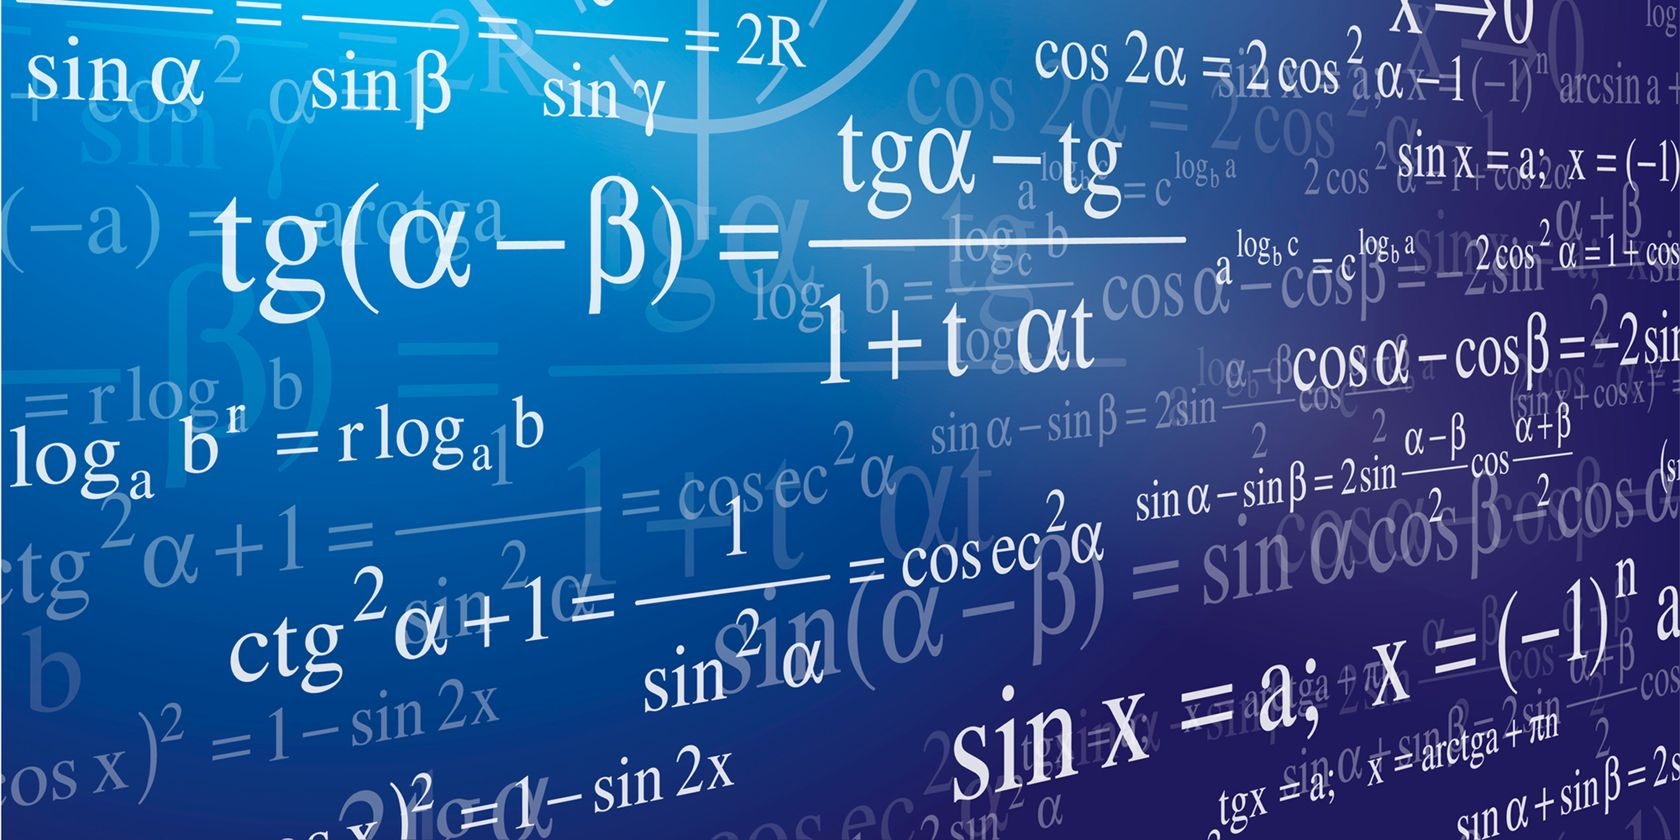 How to Solve Complex Math Equations With Bing